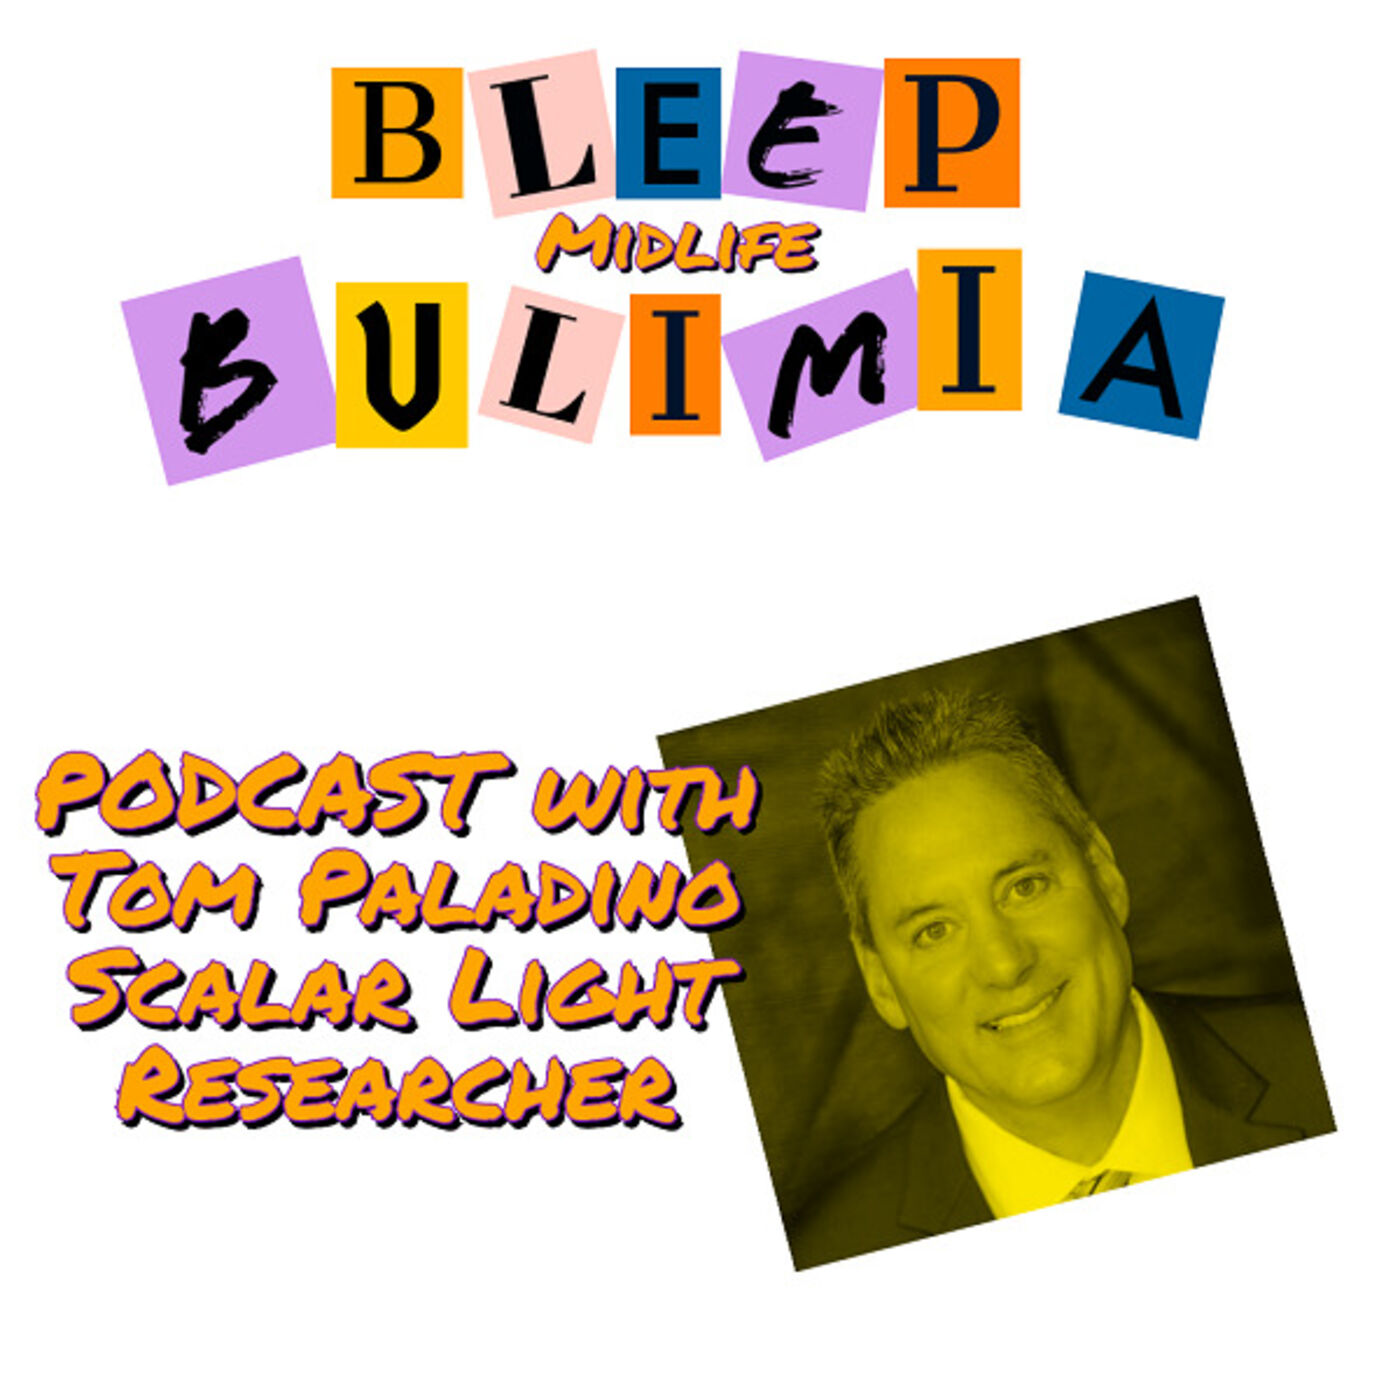 Bleep Bulimia Episode 54 with Tom Paladino Scalar Light Researcher